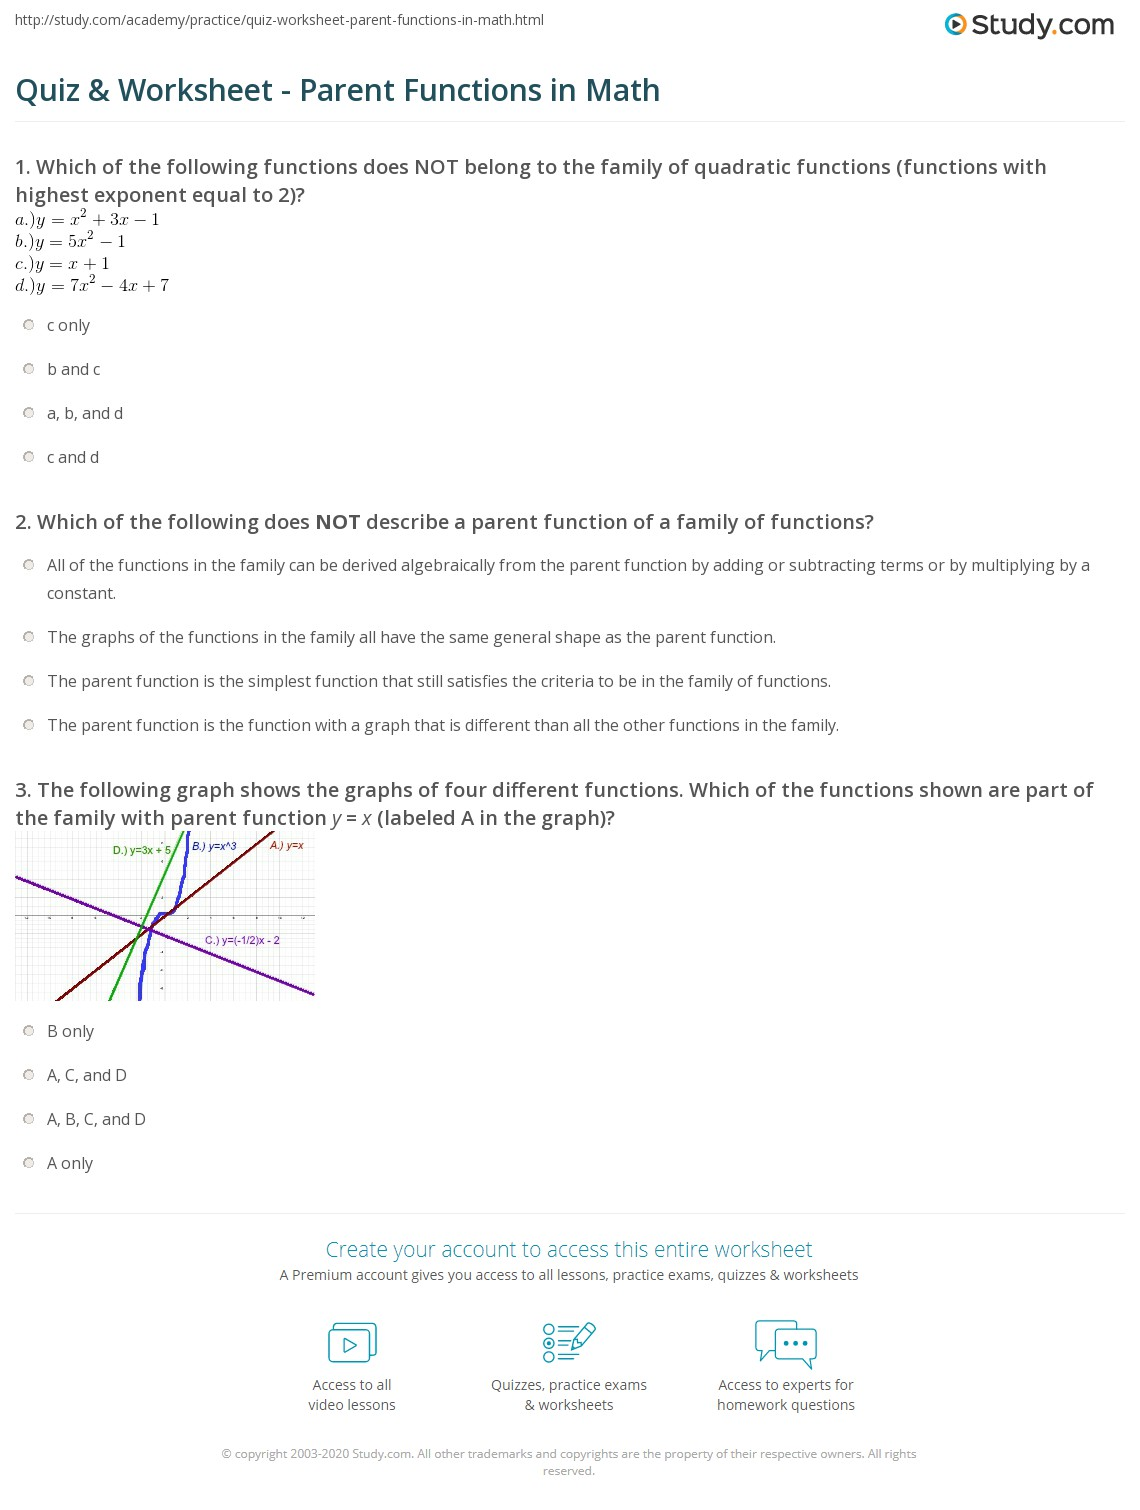 math worksheet : quiz  worksheet  parent functions in math  study  : Math Functions Worksheet